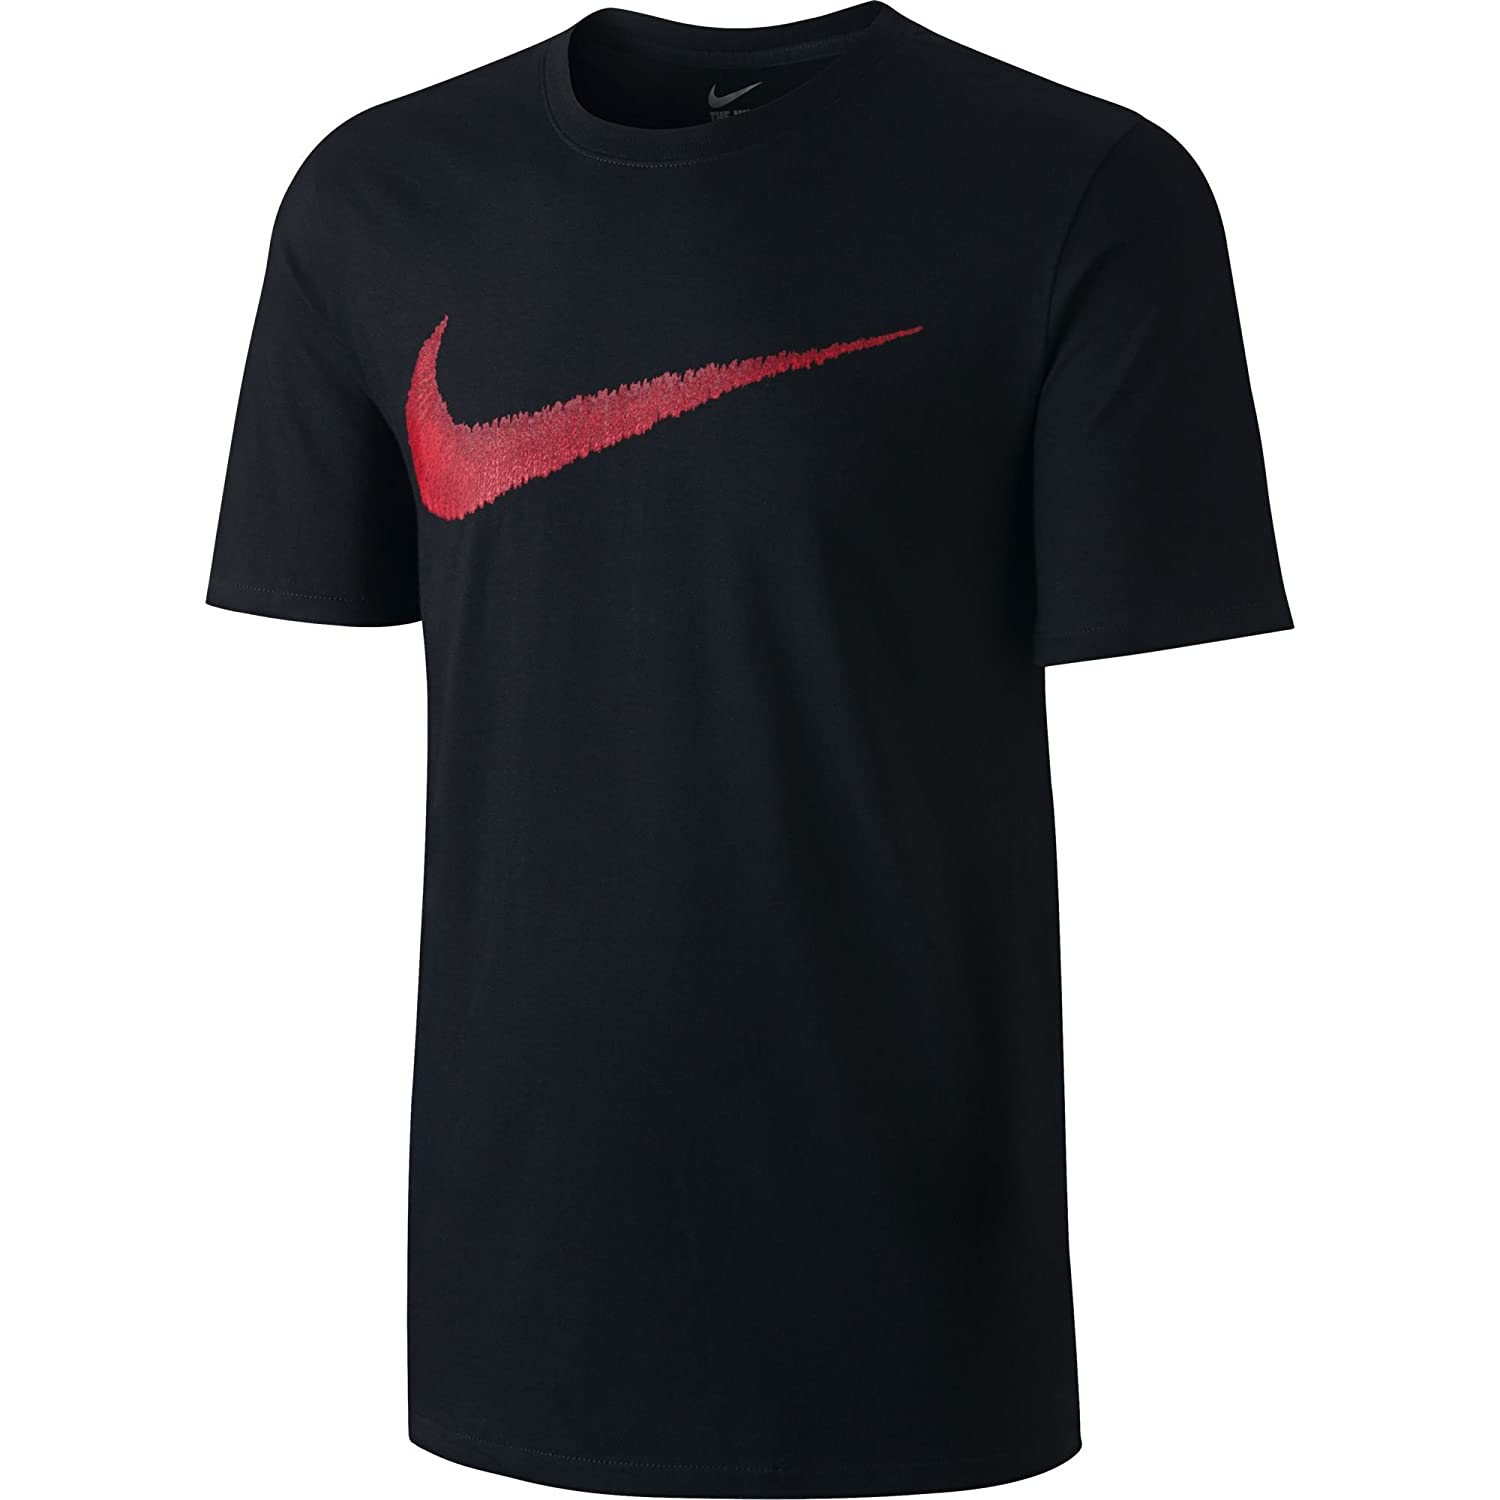 b65943d4d Amazon.com: NIKE Sportswear Men's Hangtag Swoosh Tee: Clothing